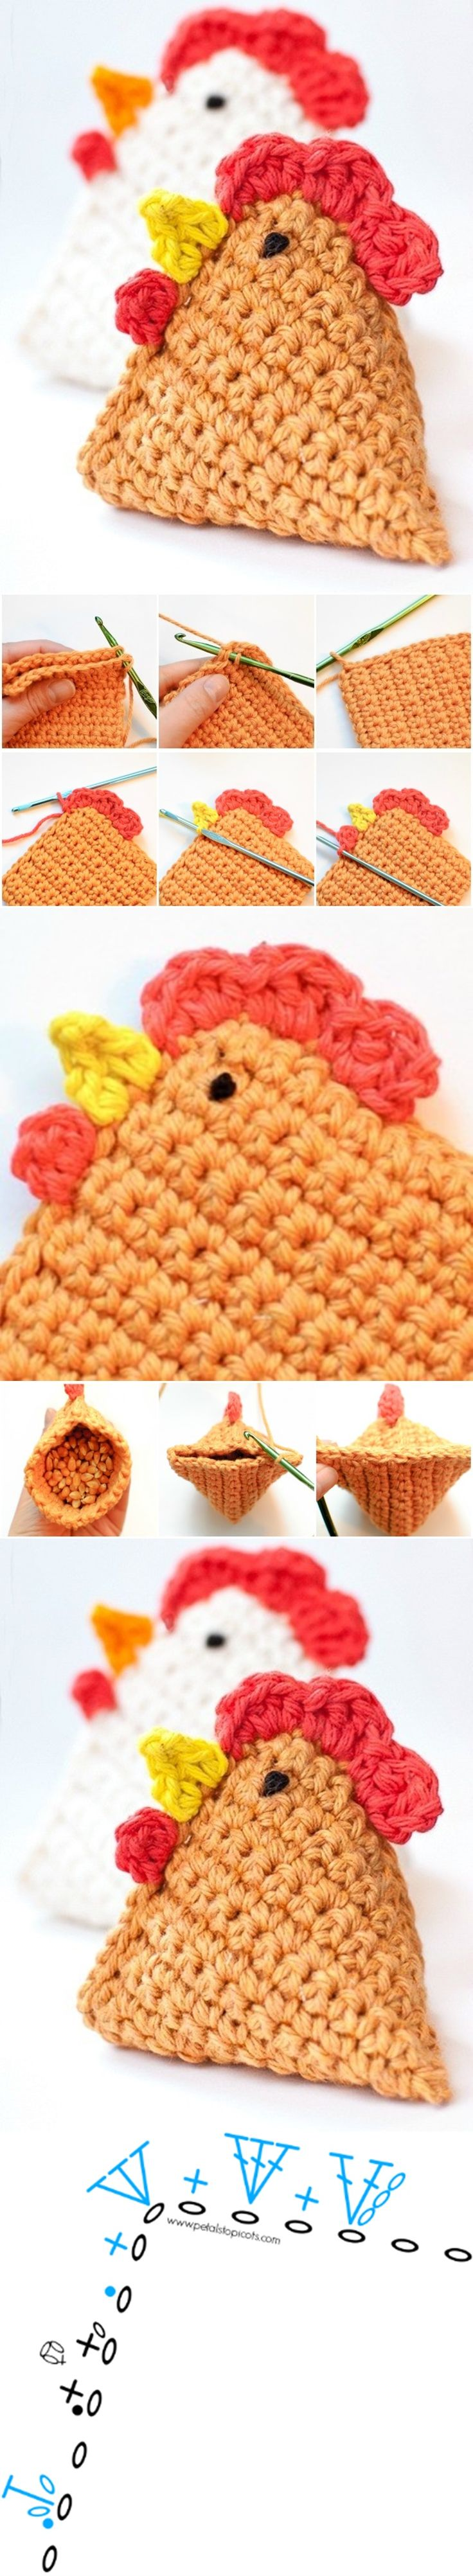 DIY Crochet Chicken Beanbag | www.FabArtDIY.com LIKE Us on Facebook ==> www.facebook.com/...